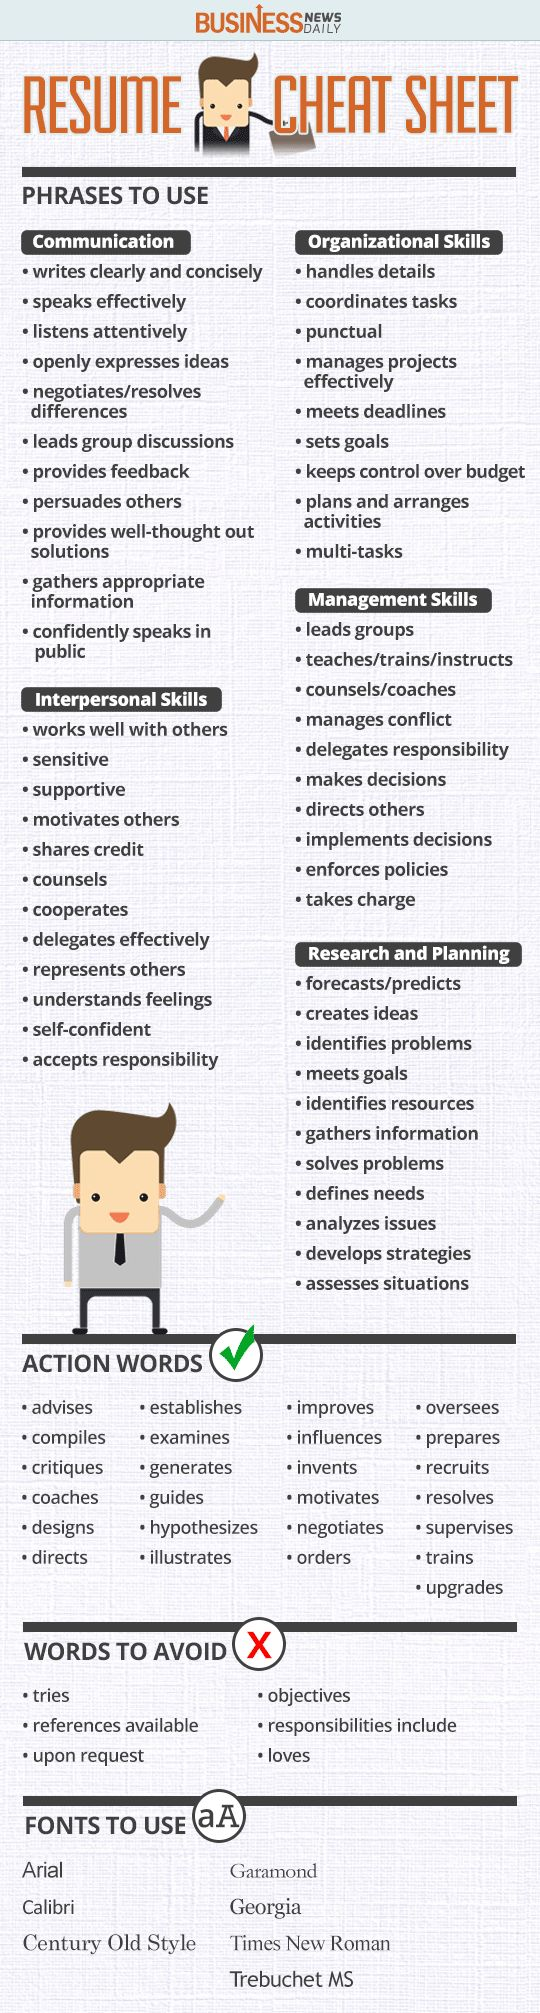 Opposenewapstandardsus  Pretty  Ideas About Resume On Pinterest  Cv Format Resume Cv And  With Exciting Resume Cheat Sheet Infographic Andrews Almost Done With A Complete Unit On Employment Which With Cute How To Make Resume On Word  Also Hotel Night Auditor Resume In Addition Most Effective Resume And Do I Need A Cover Letter For A Resume As Well As A Cover Letter For A Resume Additionally Assistant Branch Manager Resume From Pinterestcom With Opposenewapstandardsus  Exciting  Ideas About Resume On Pinterest  Cv Format Resume Cv And  With Cute Resume Cheat Sheet Infographic Andrews Almost Done With A Complete Unit On Employment Which And Pretty How To Make Resume On Word  Also Hotel Night Auditor Resume In Addition Most Effective Resume From Pinterestcom